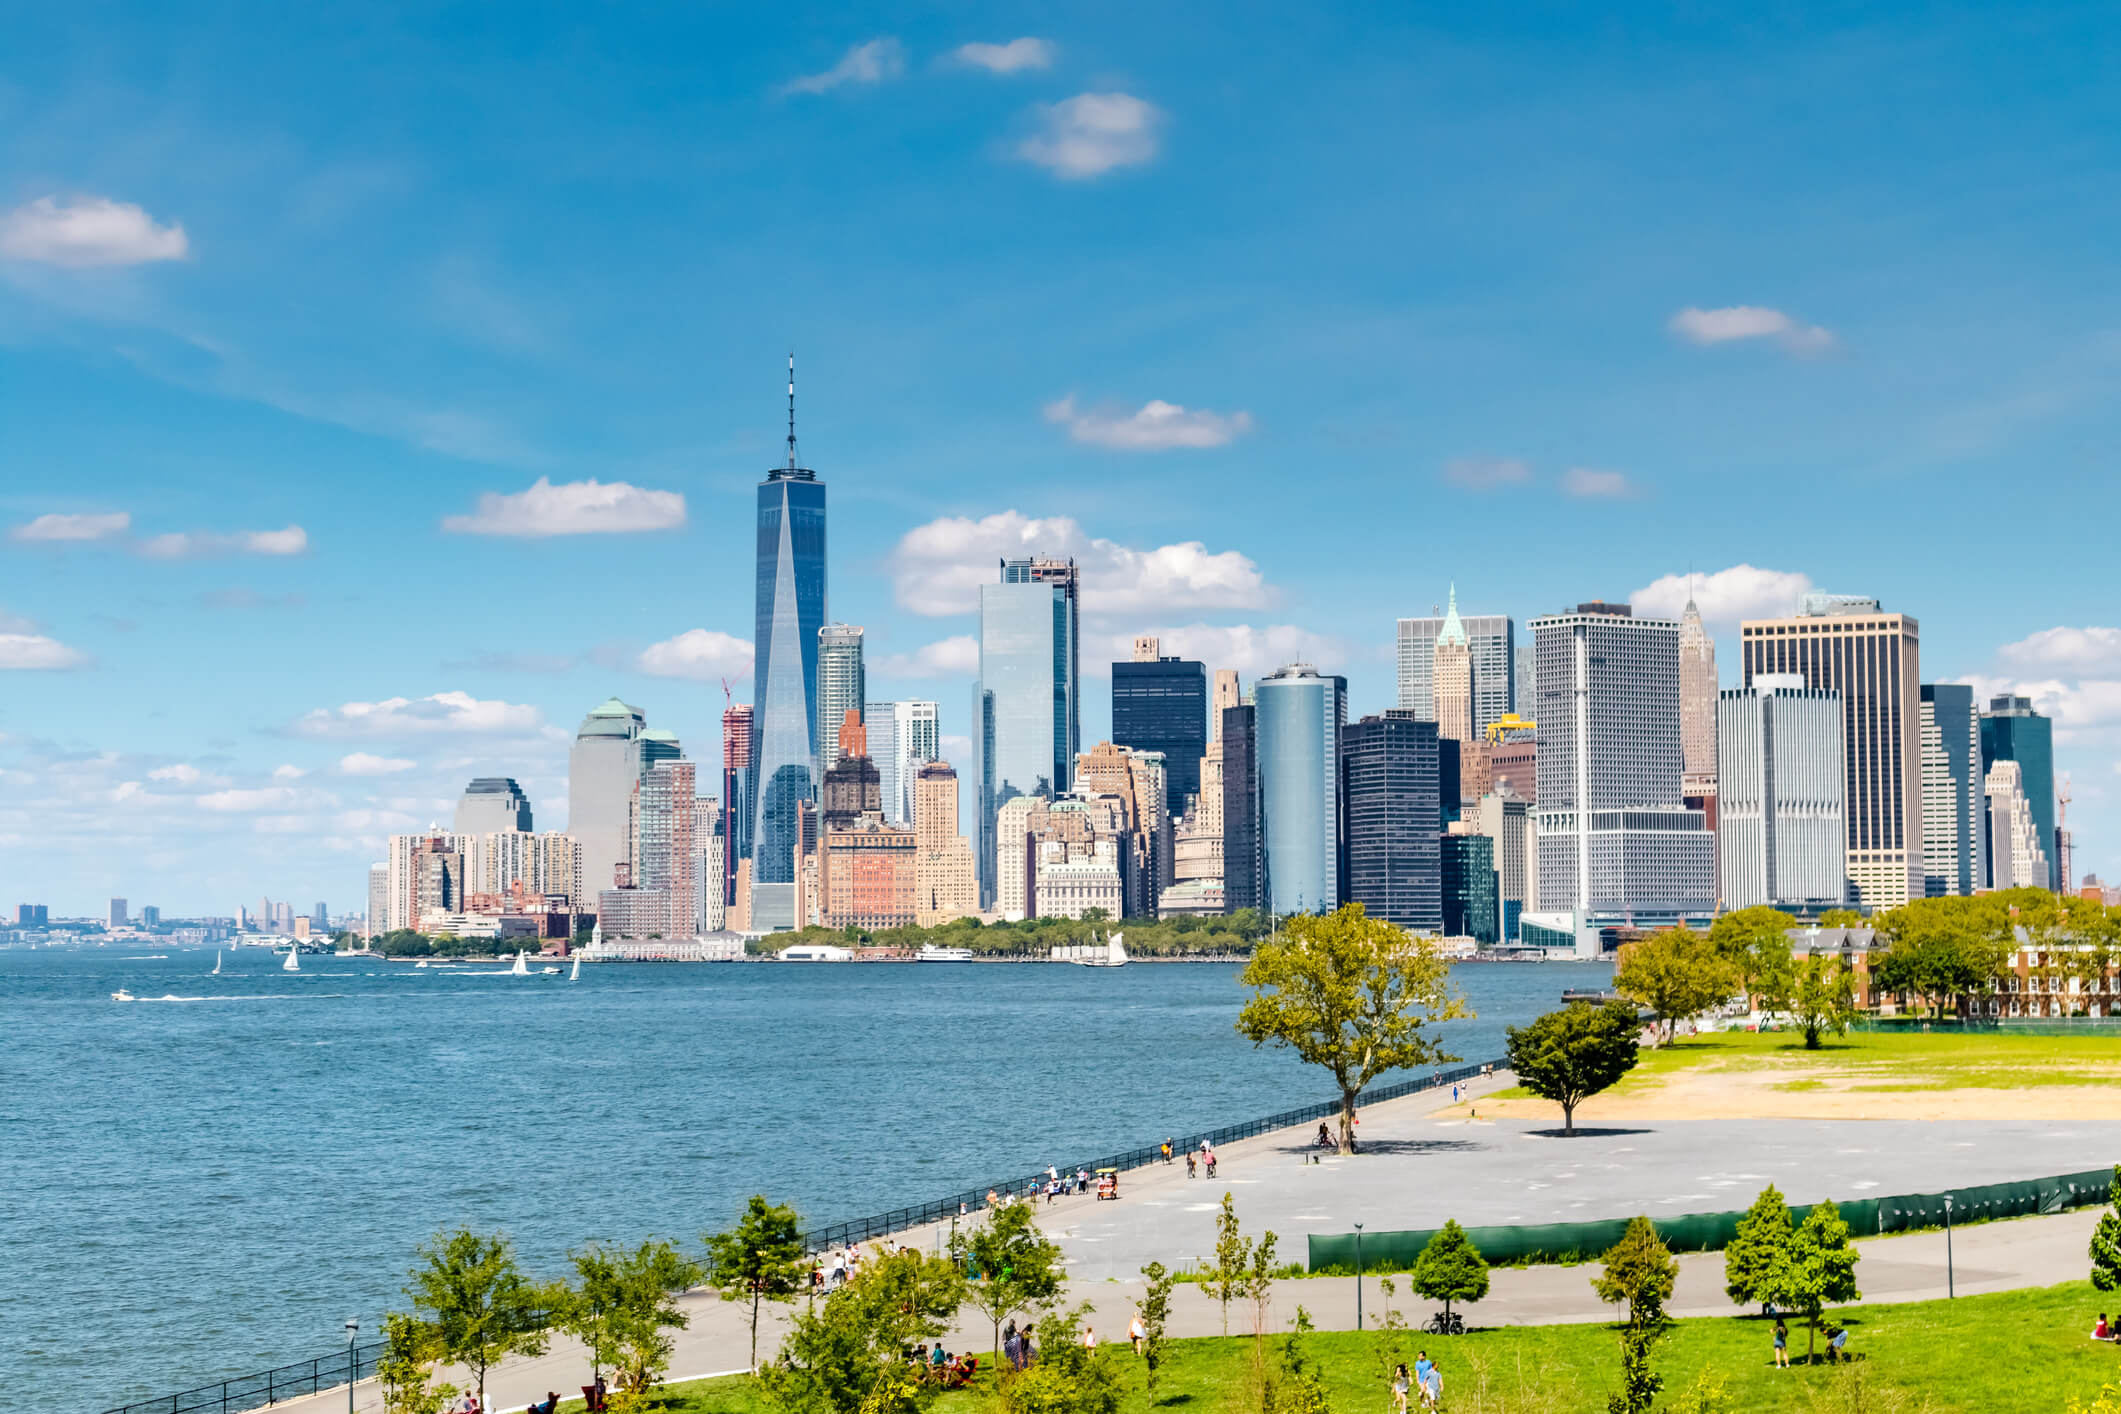 Hop on a Ferry to Governors Island